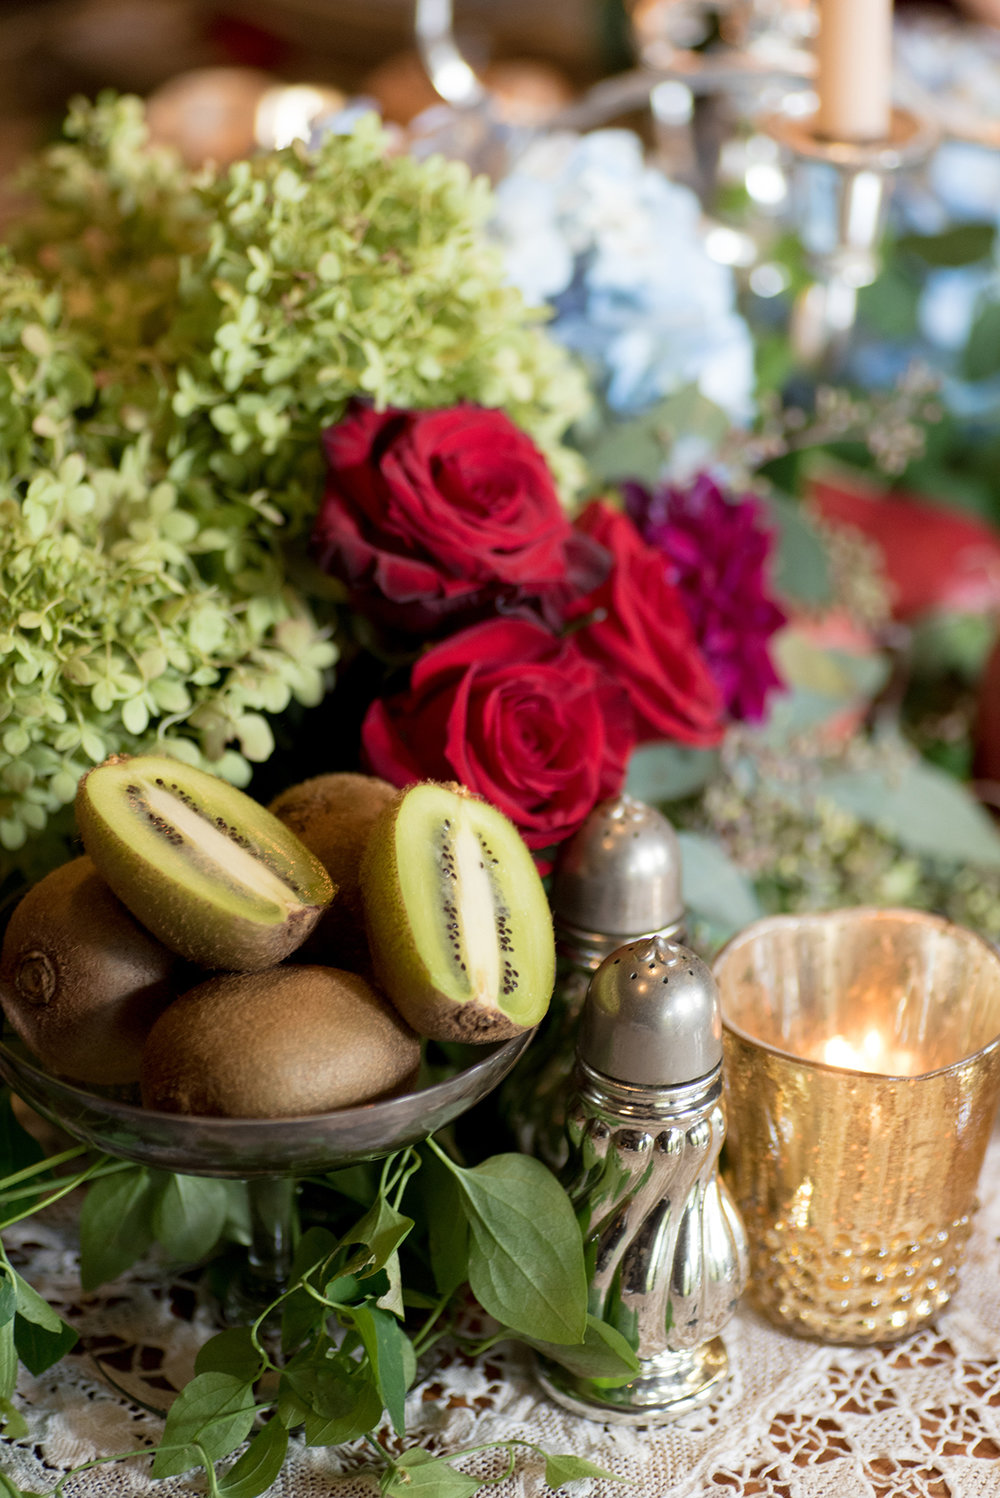 event-design-table-setting-detail-roses-fall-theme.jpg